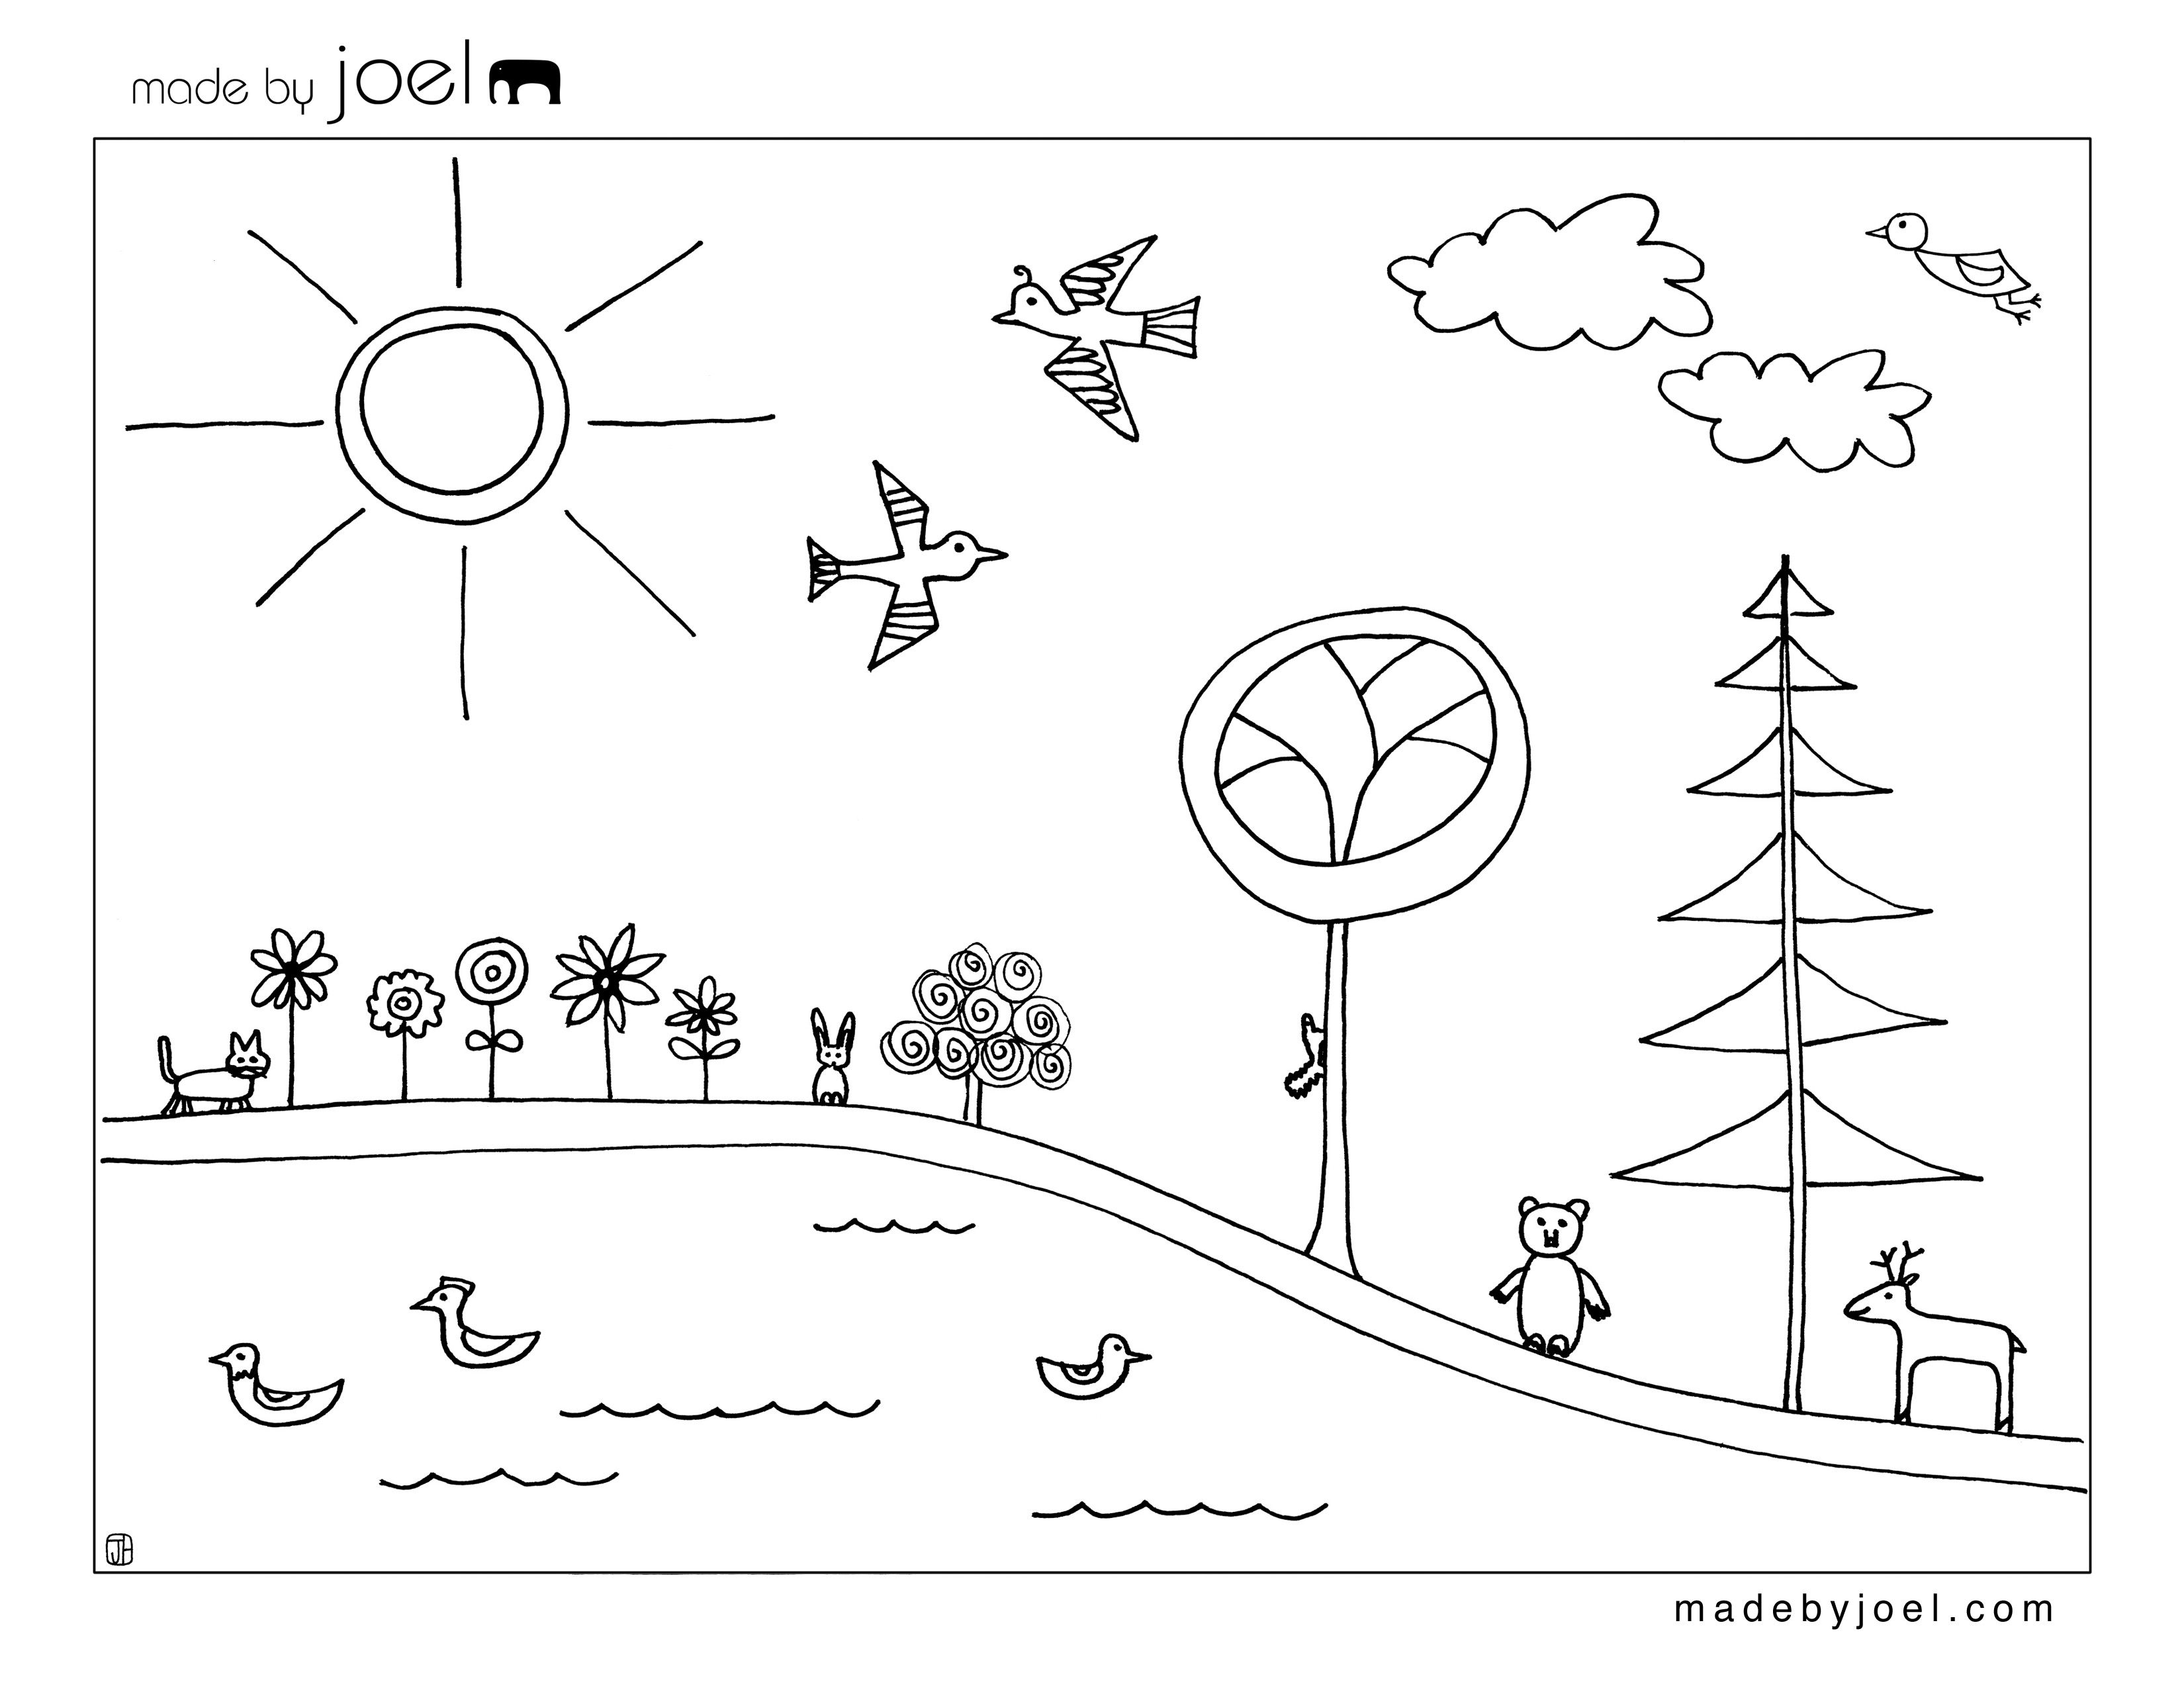 made by joel earth day coloring sheet printables kids - Free Earth Day Coloring Pages